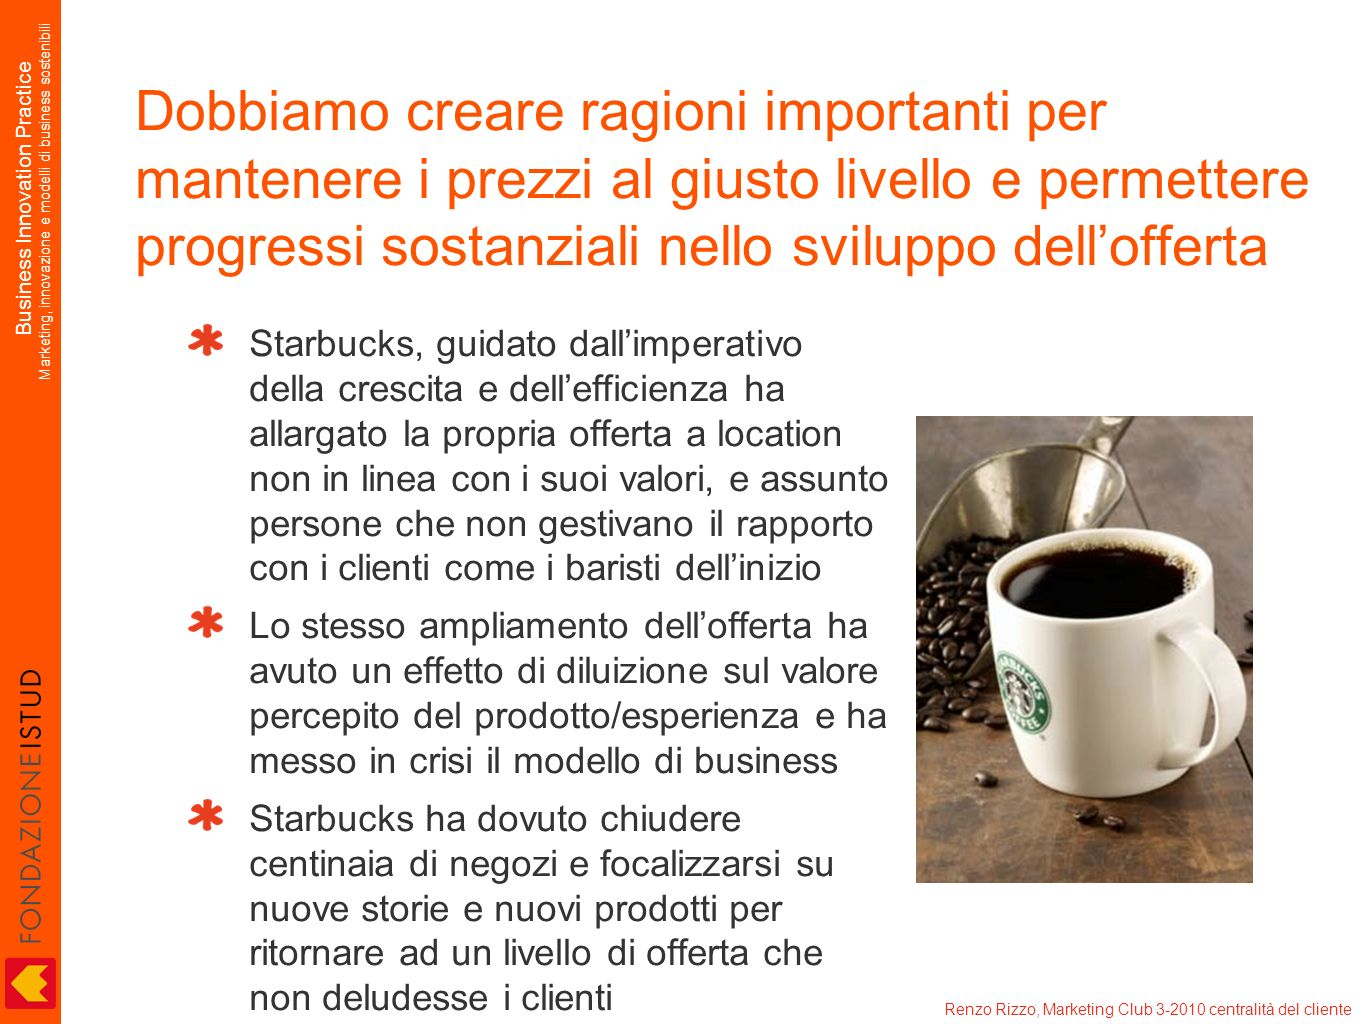 Business Innovation Practice Marketing, innovazione e modelli di business sostenibili Renzo Rizzo, Marketing Club 3-2010 centralità del cliente Dobbia